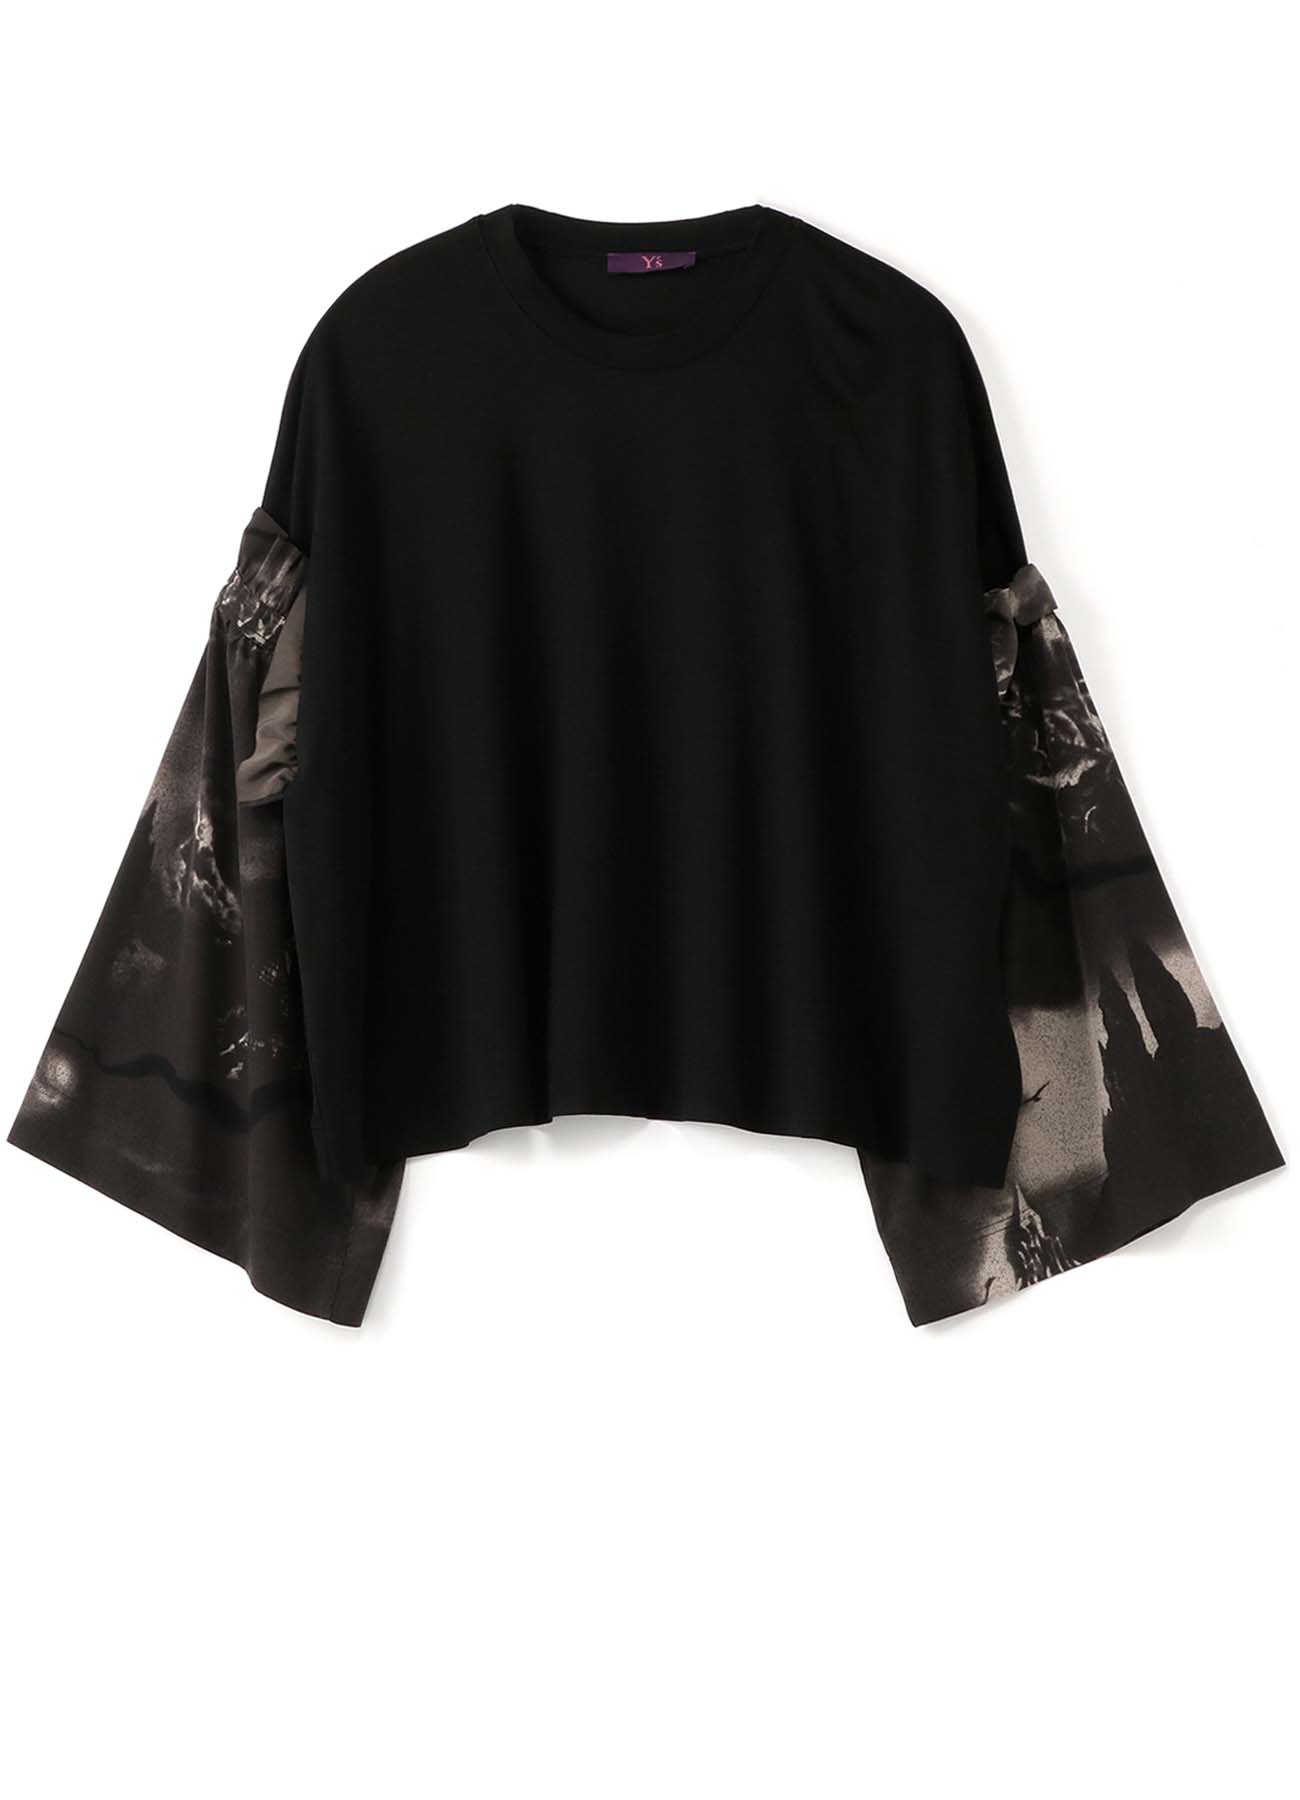 Y'sPINK RAYON x CASTLE PRINT POLYESTER DETACHABLE SLEEVE T-SHIRT